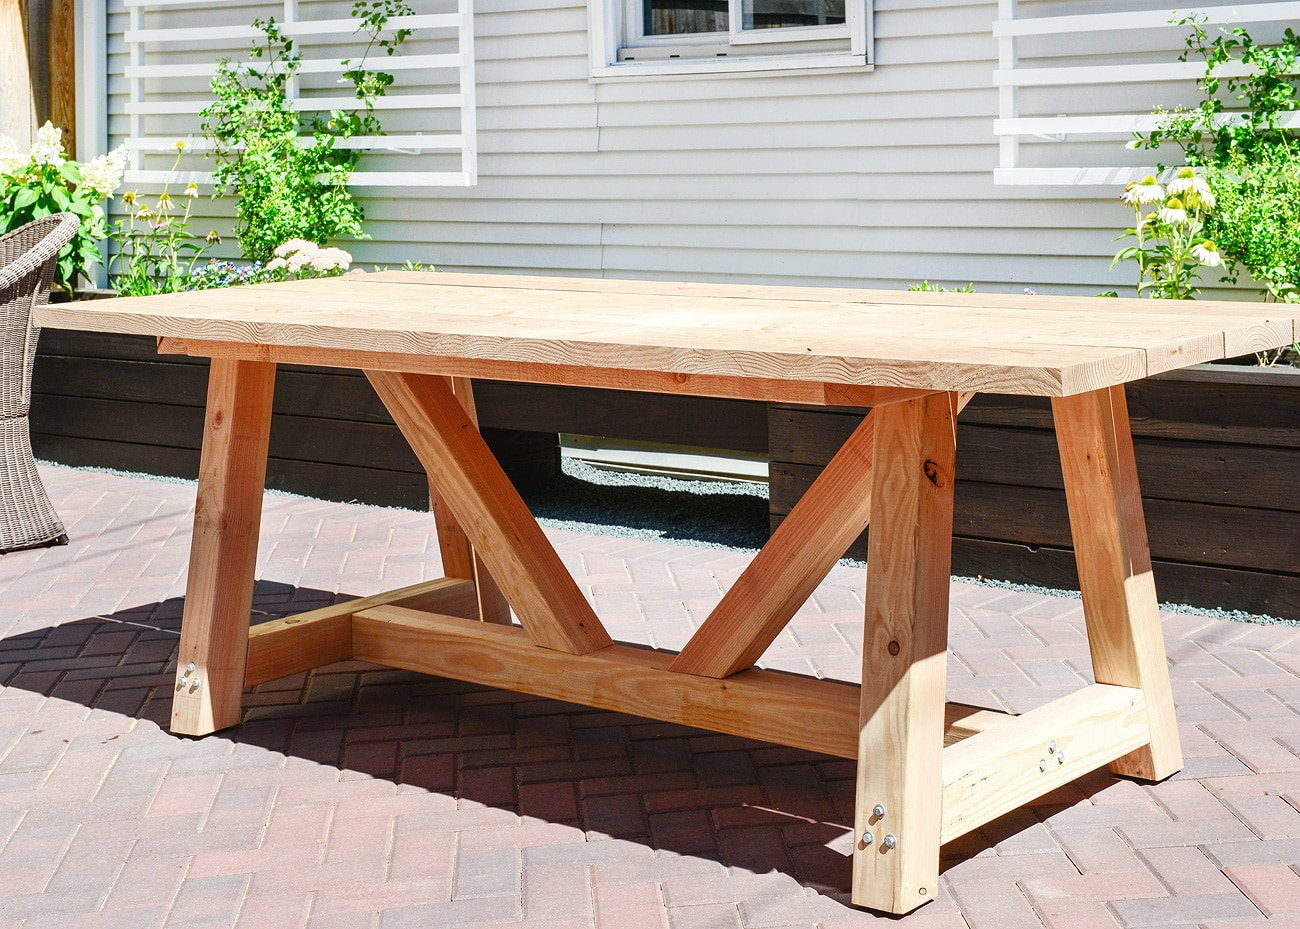 Our diy patio table part i for Garden patio table